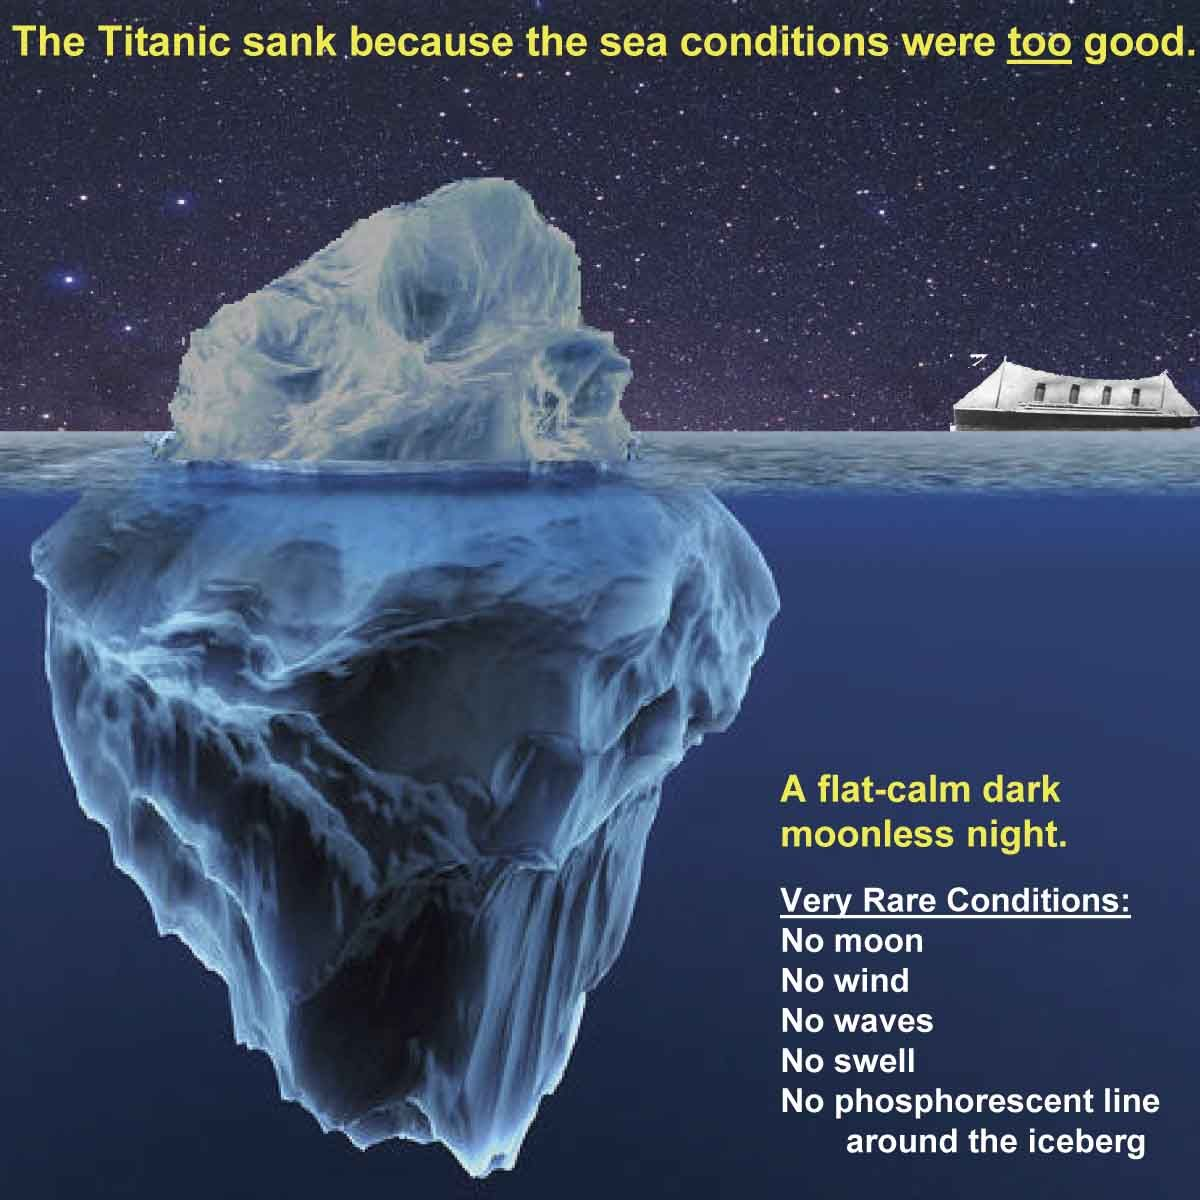 Titanic Facts And History | The Titanic sank because the sea ...